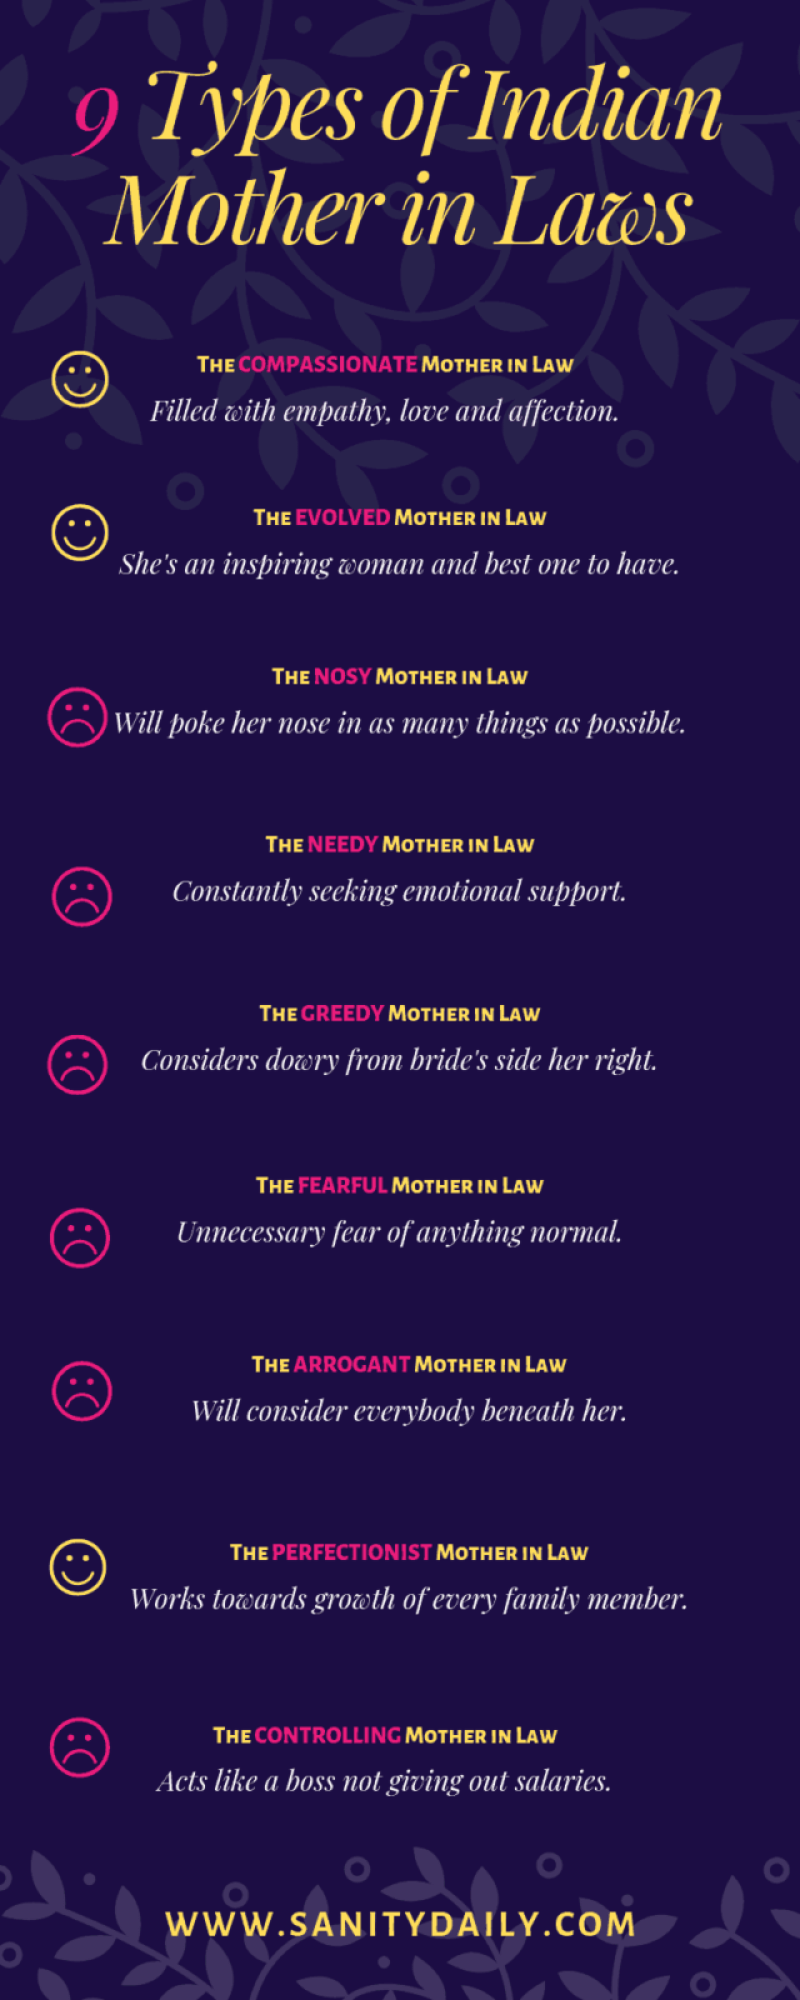 9 Types of Indian Mother in Laws